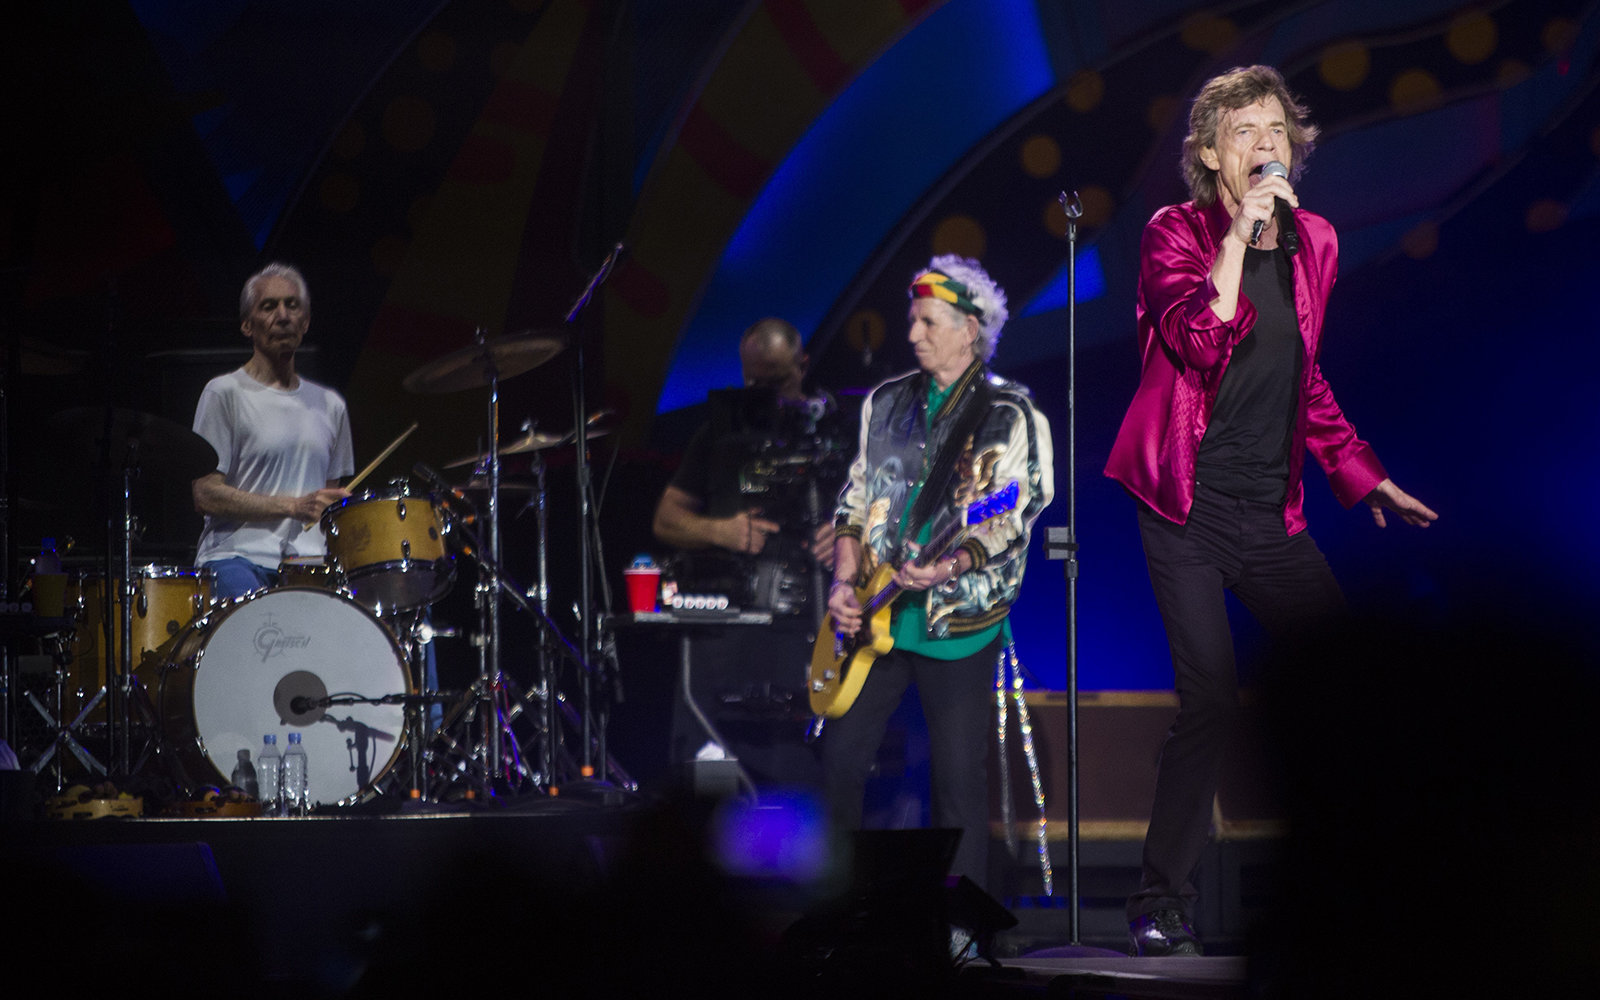 Rolling Stones on stage in concert